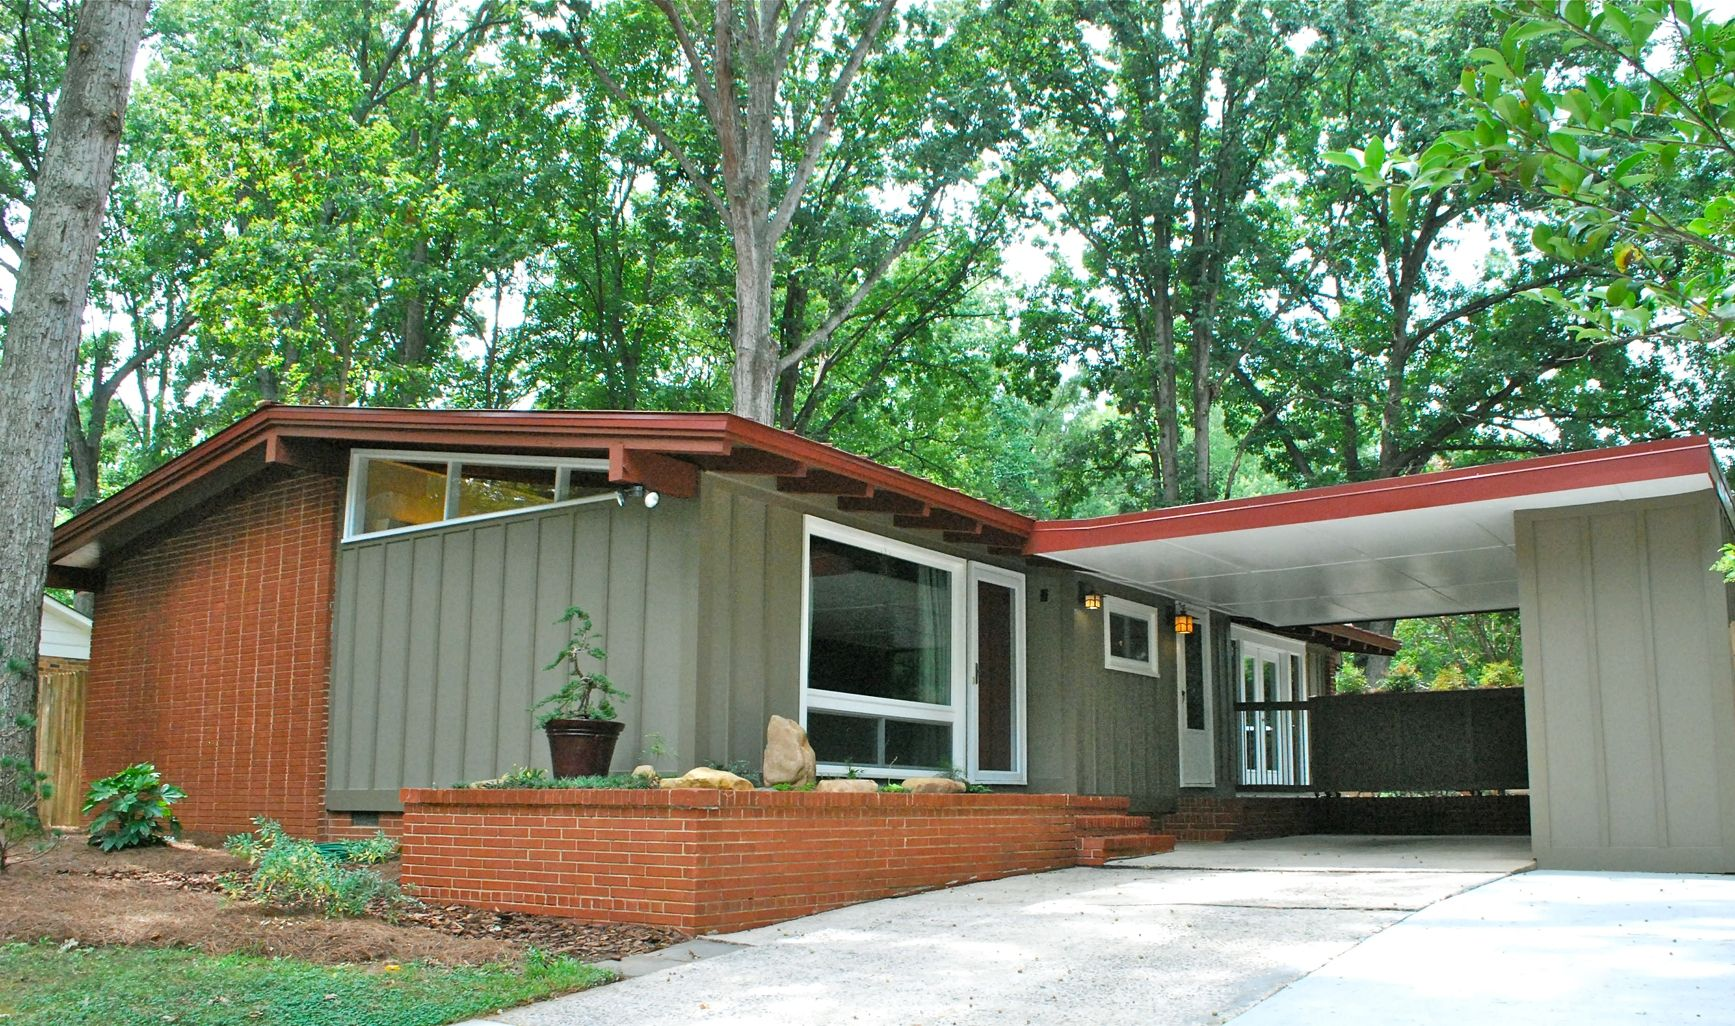 Mid century modern exterior house colors - Find This Pin And More On Mid Mod Homes Luxury Modern Ranch Style House